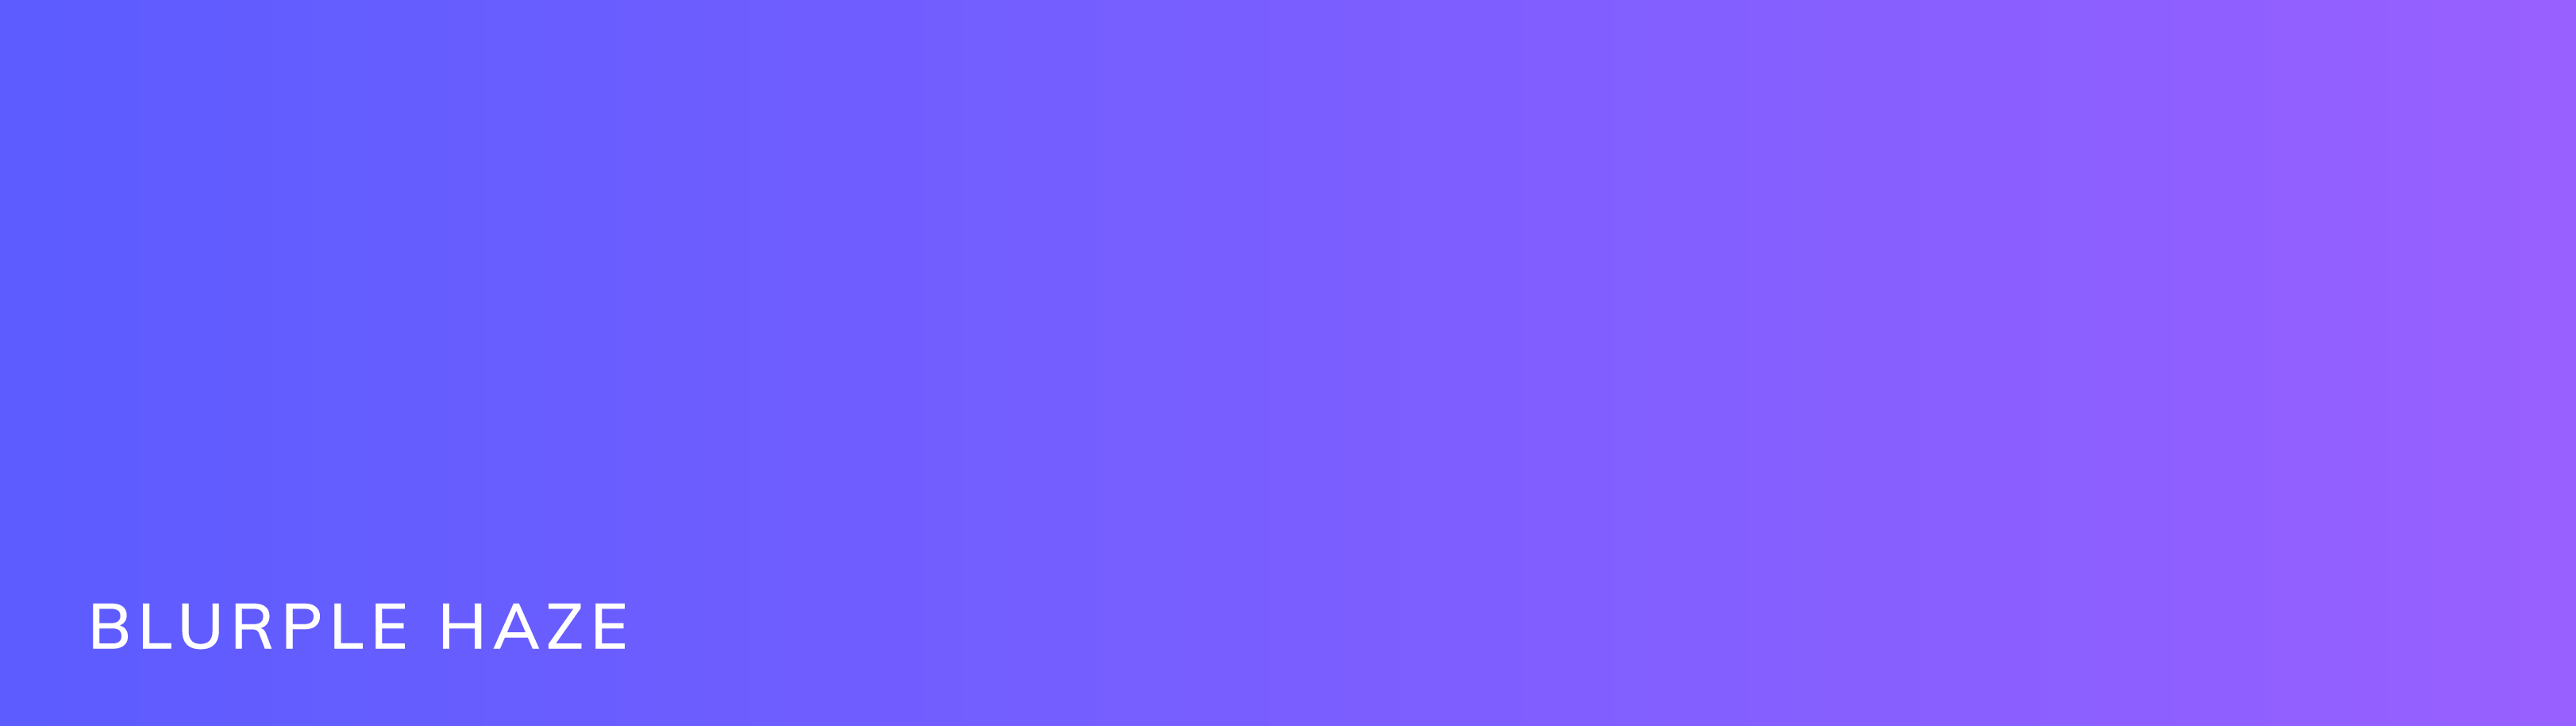 Our brand color gradient called Blurple Haze. This gradient goes from a blue purple to a red purple.